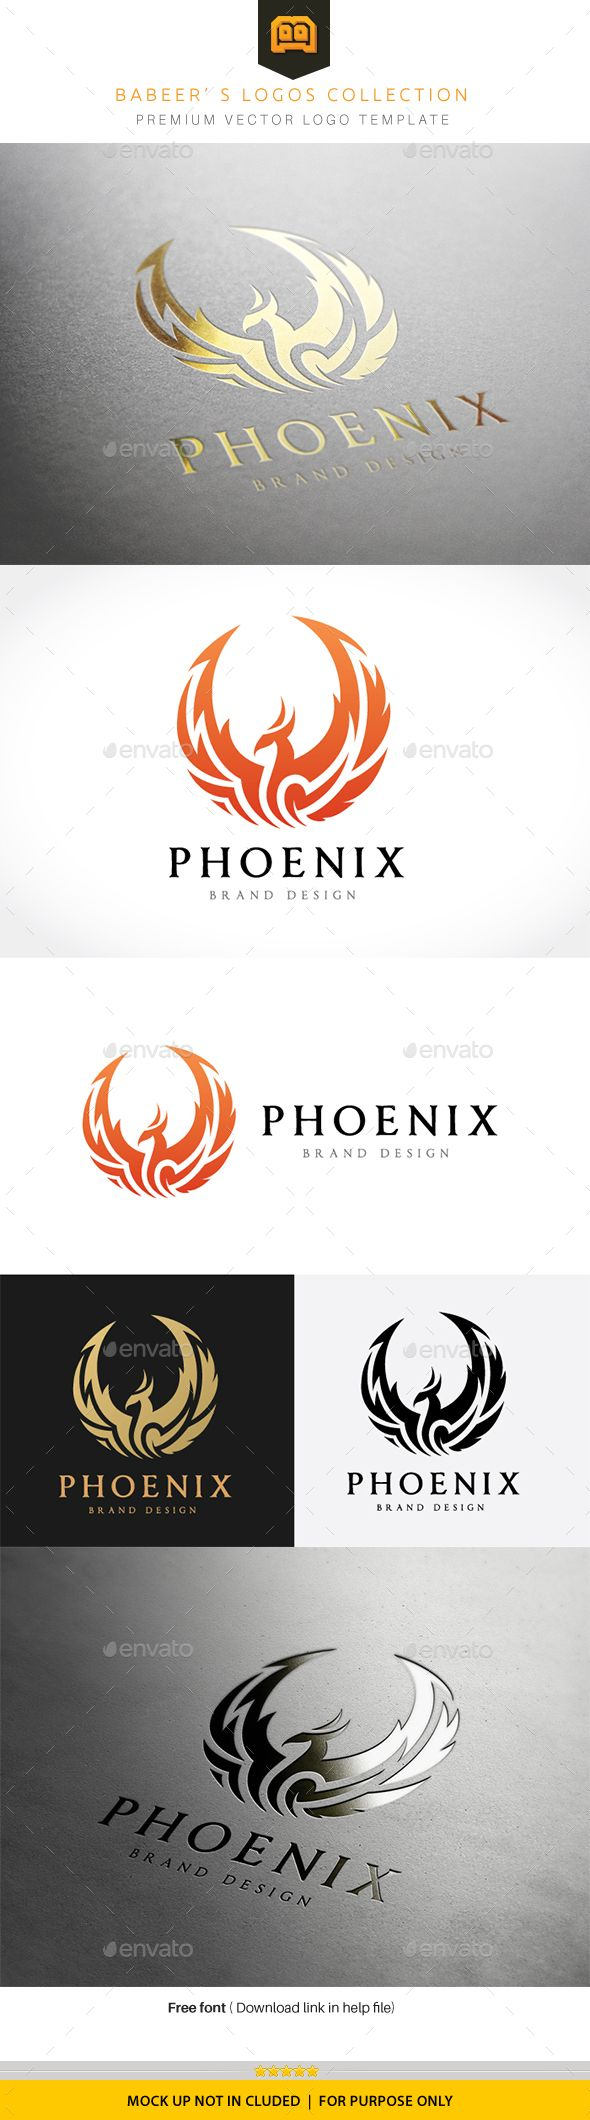 Phoenix Logo Template Vector EPS, AI Illustrator. Download here: http://graphicriver.net/item/phoenix-logo/16067897?ref=ksioks